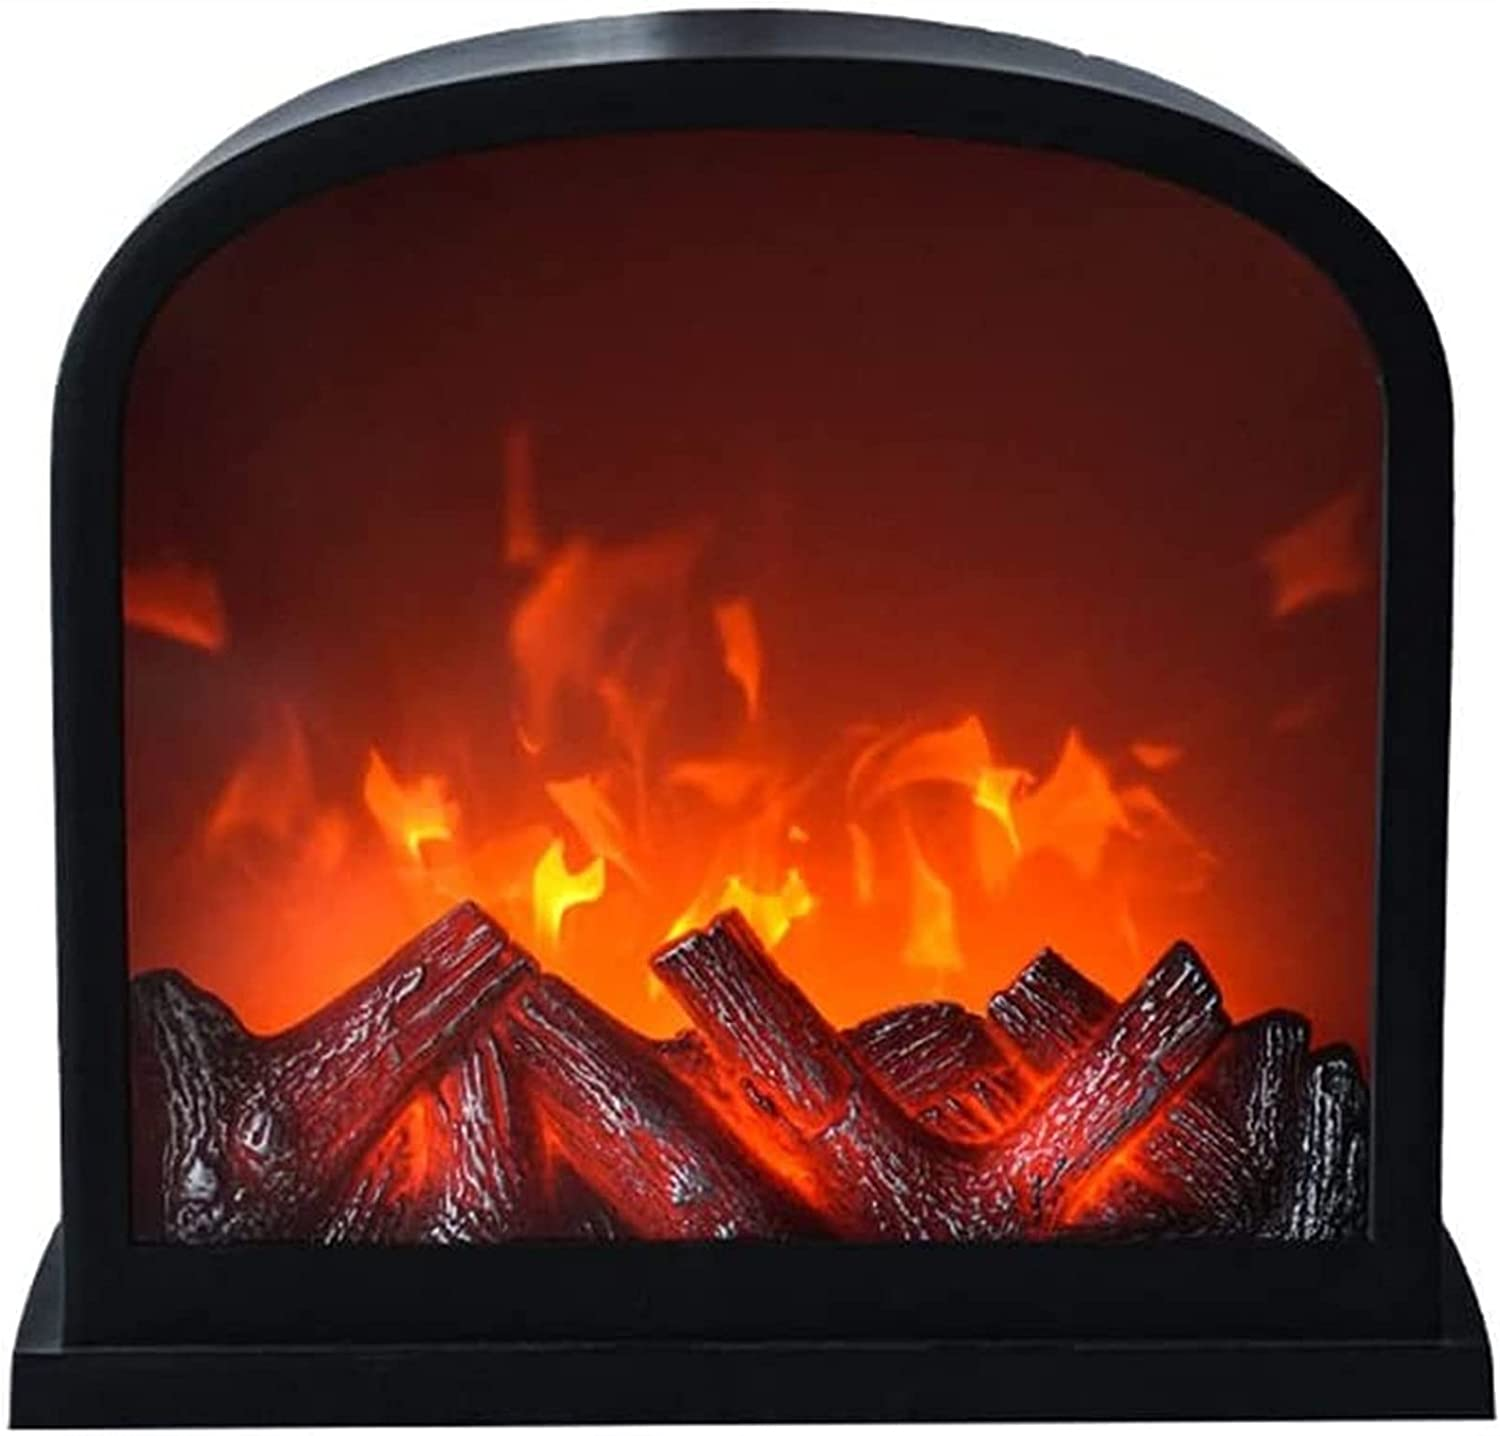 Long-awaited Yisss LED Fake Fire Flame Wall Fireplace Light New sales with Lights